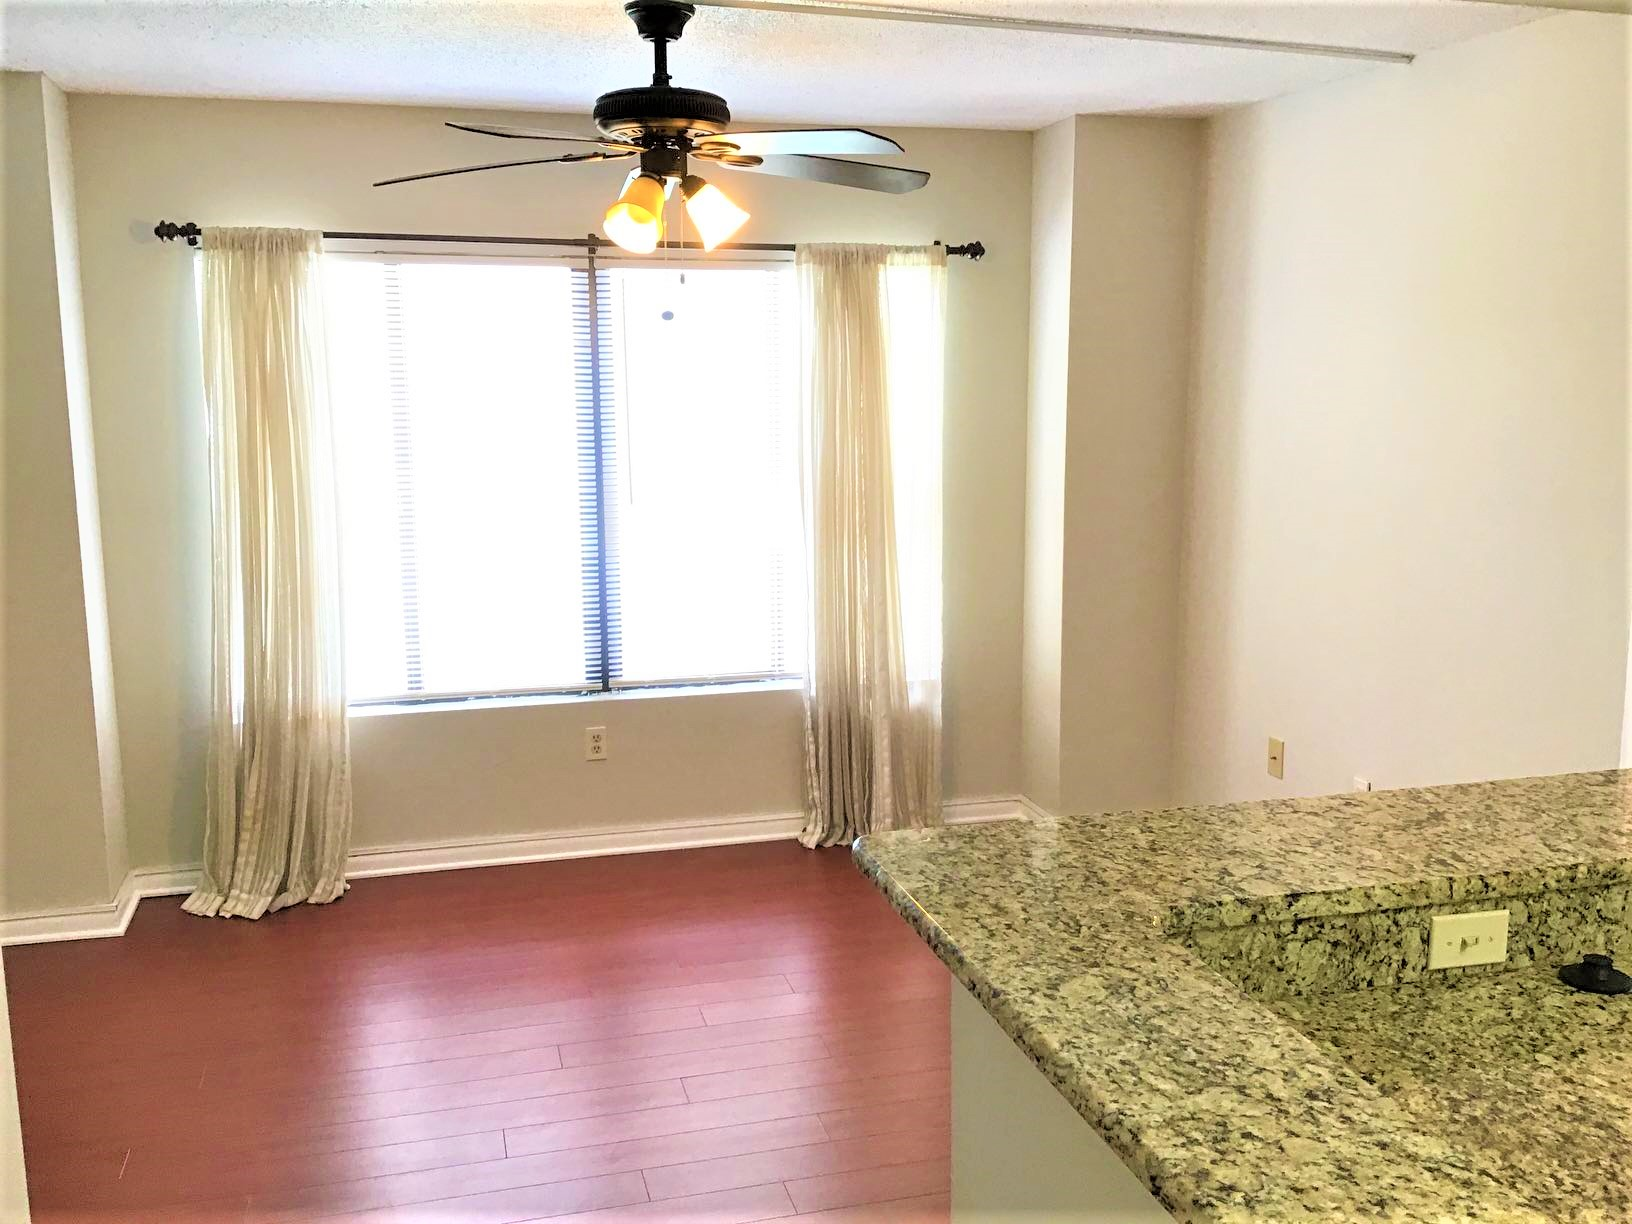 1600 Park Circle,Columbia,South Carolina 29201,2 Bedrooms Bedrooms,2 BathroomsBathrooms,Apartment,Park Circle,1378